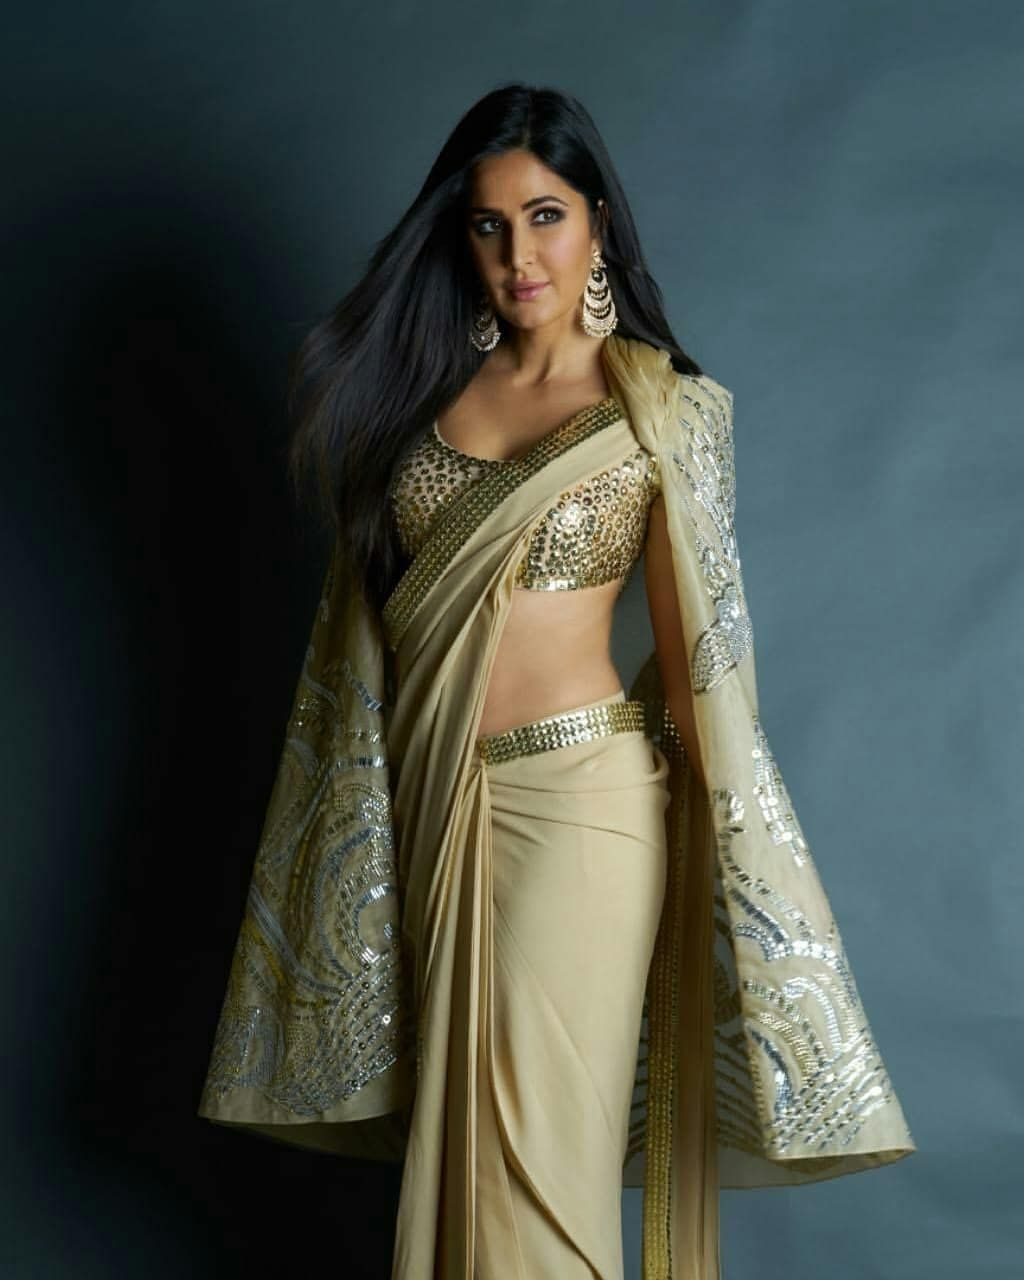 Katrina Kaif Looking Gorgeous Latest Saree Trends Saree Trends Bollywood Fashion